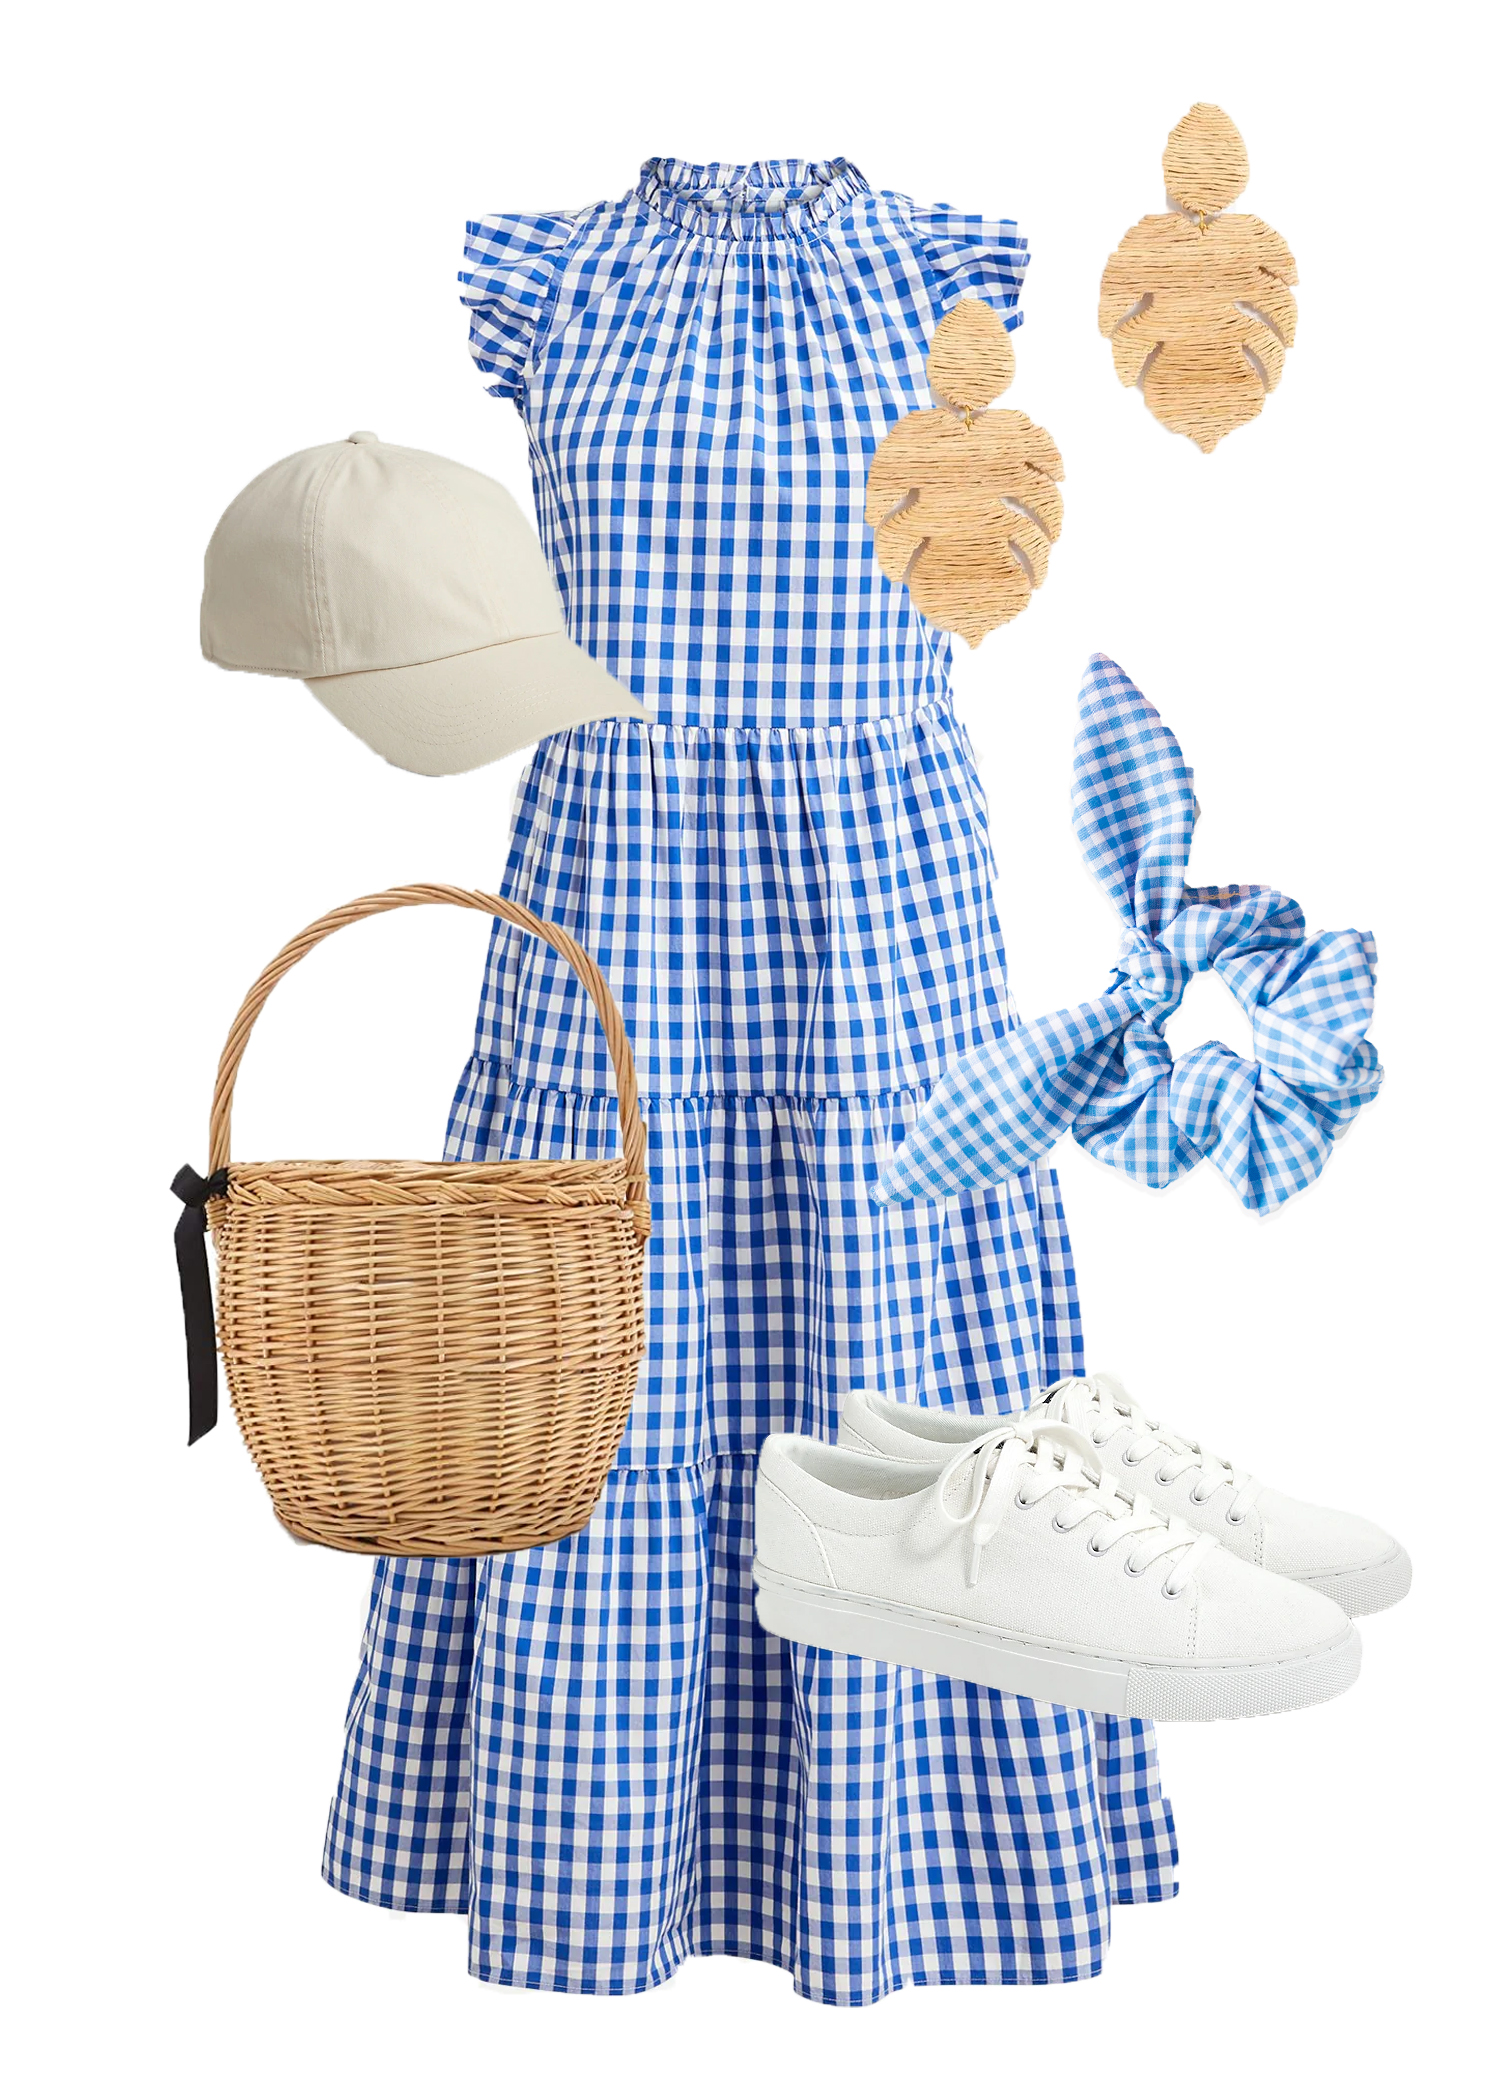 coastal style outfit idea with gingham blue dress and white sneakers